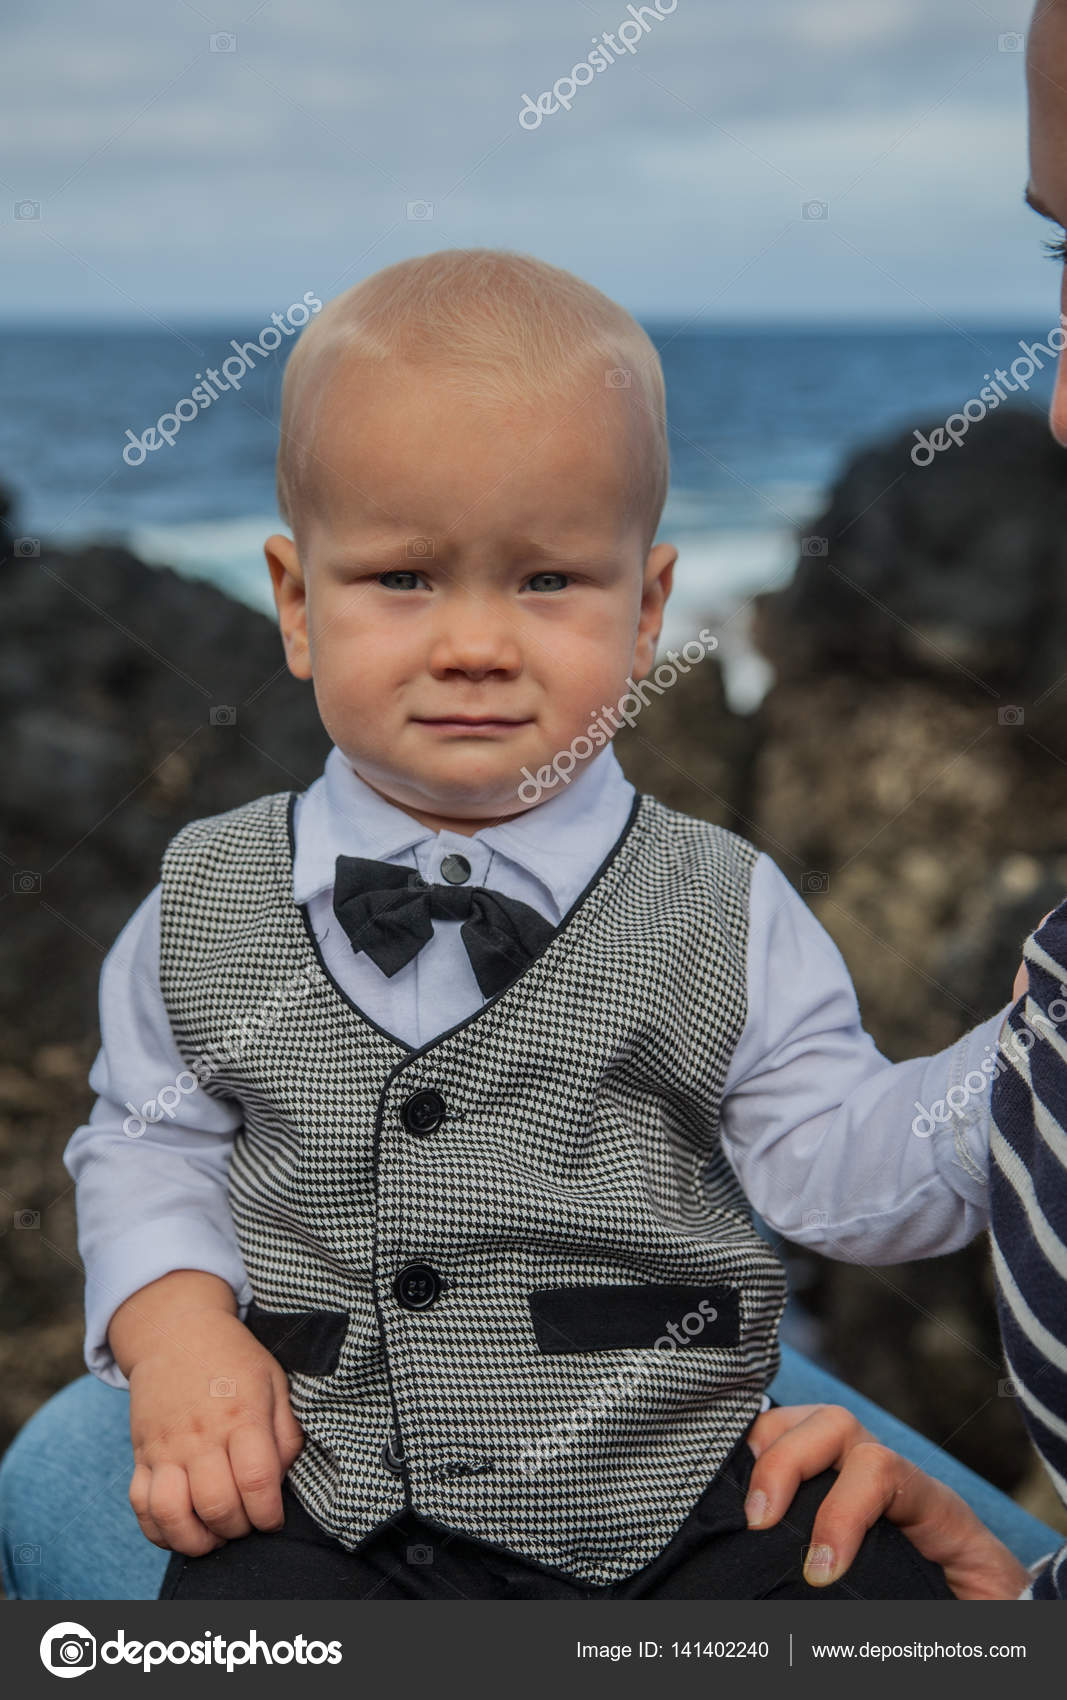 cute small baby boy smiling in formal grey suit of waistcoat outdoor